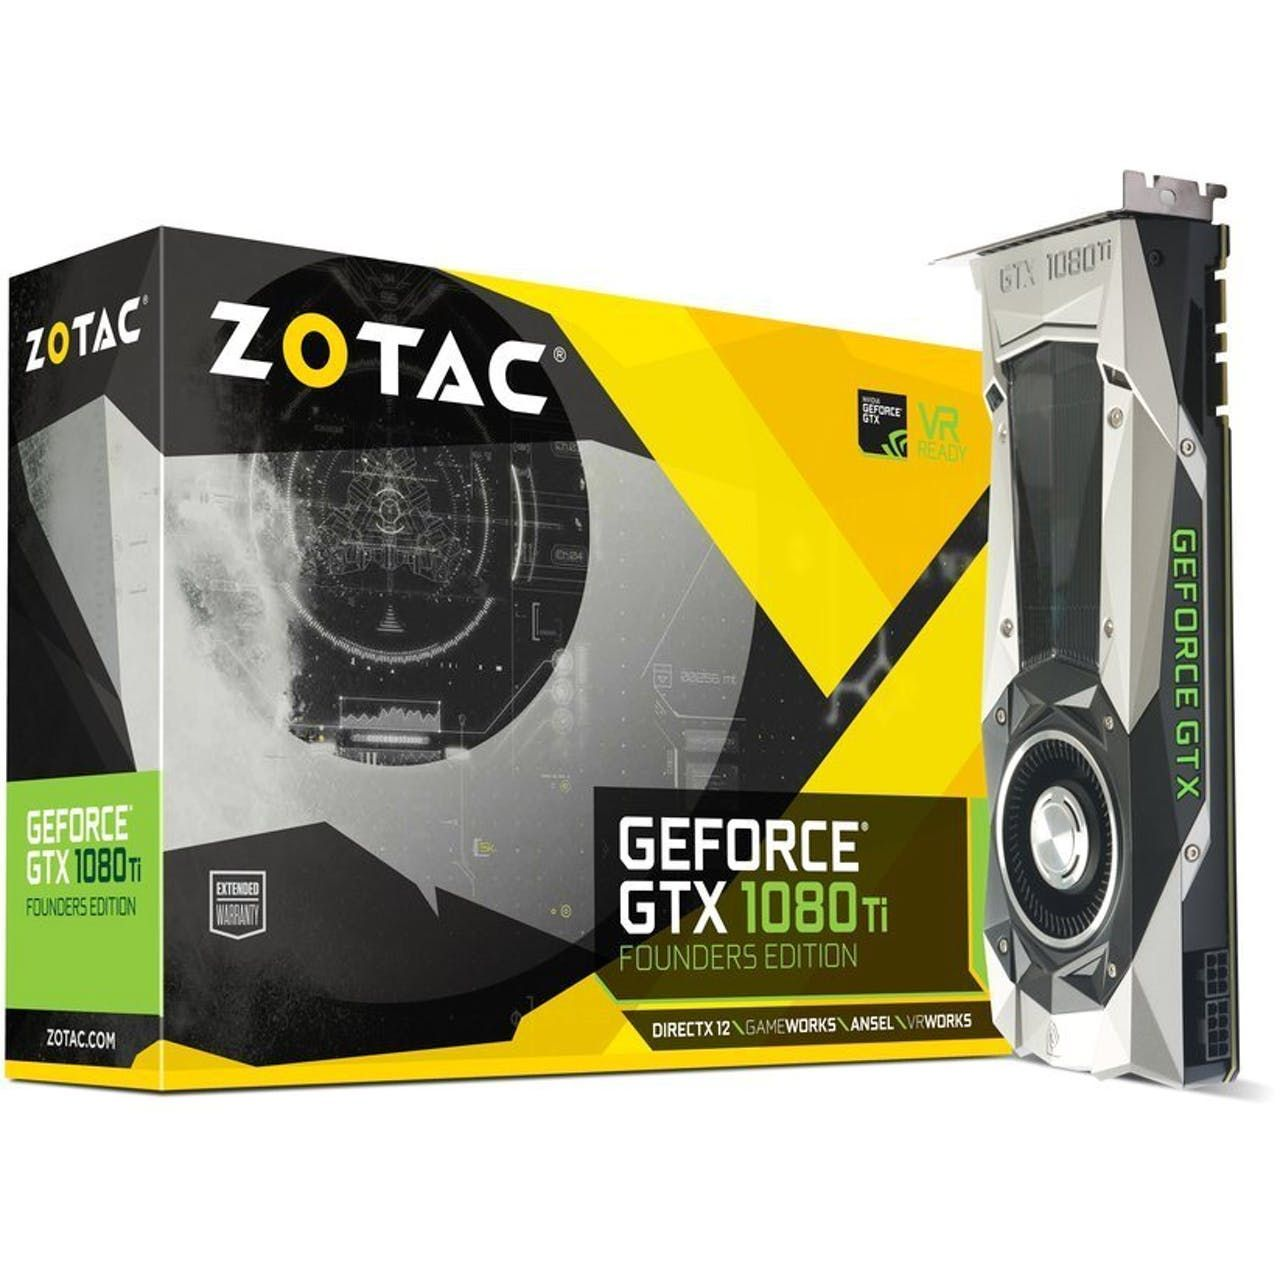 Zotac Geforce Gtx 1080 Ti Founders Edition 11gb Pci E Graphics Card Graphic Card Nvidia Video Card